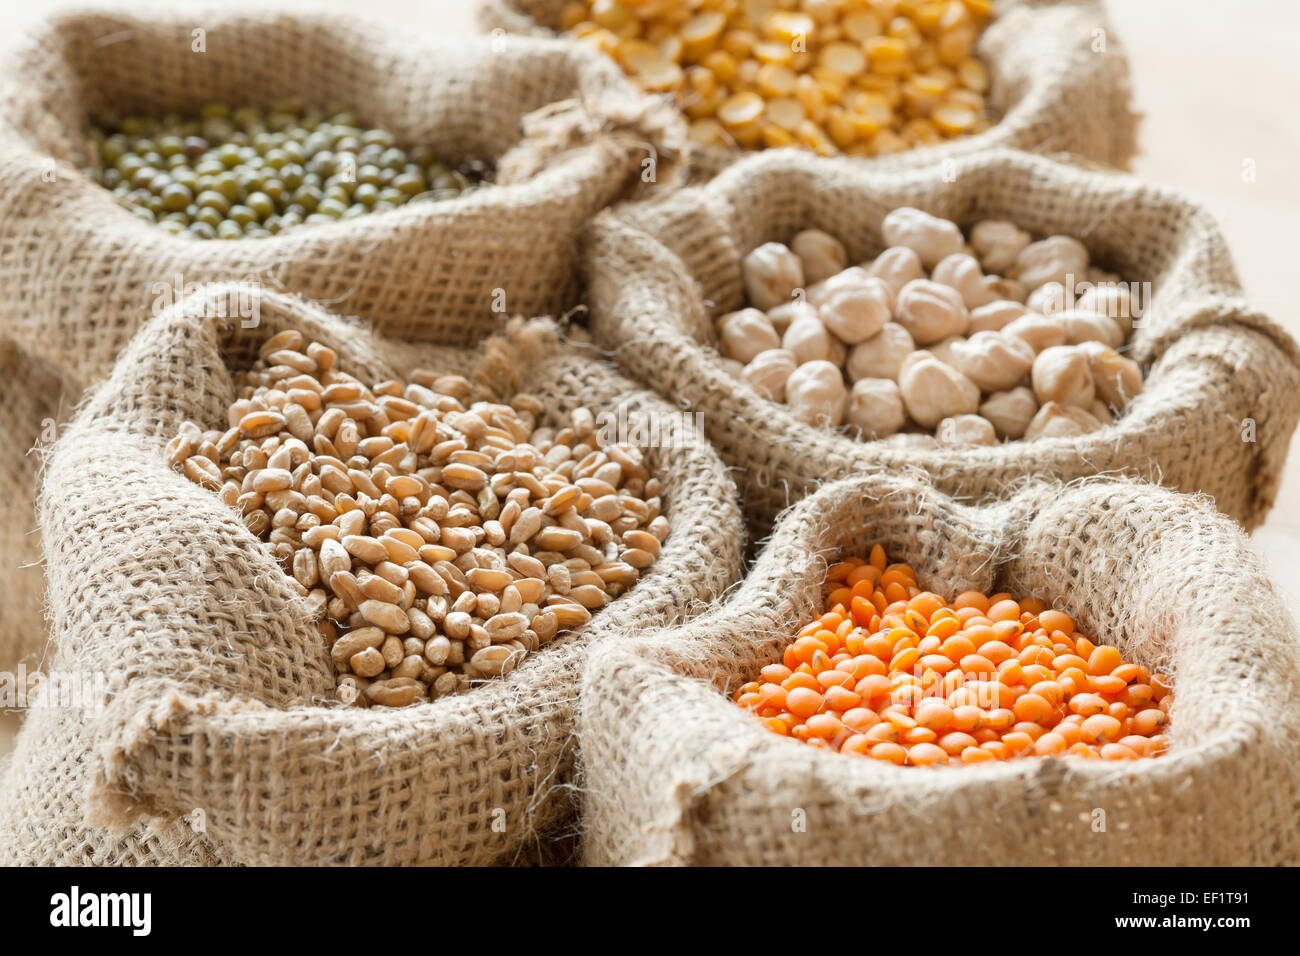 hessian bags with wheat, peas, chick peas, red lentils and green mung - Stock Image